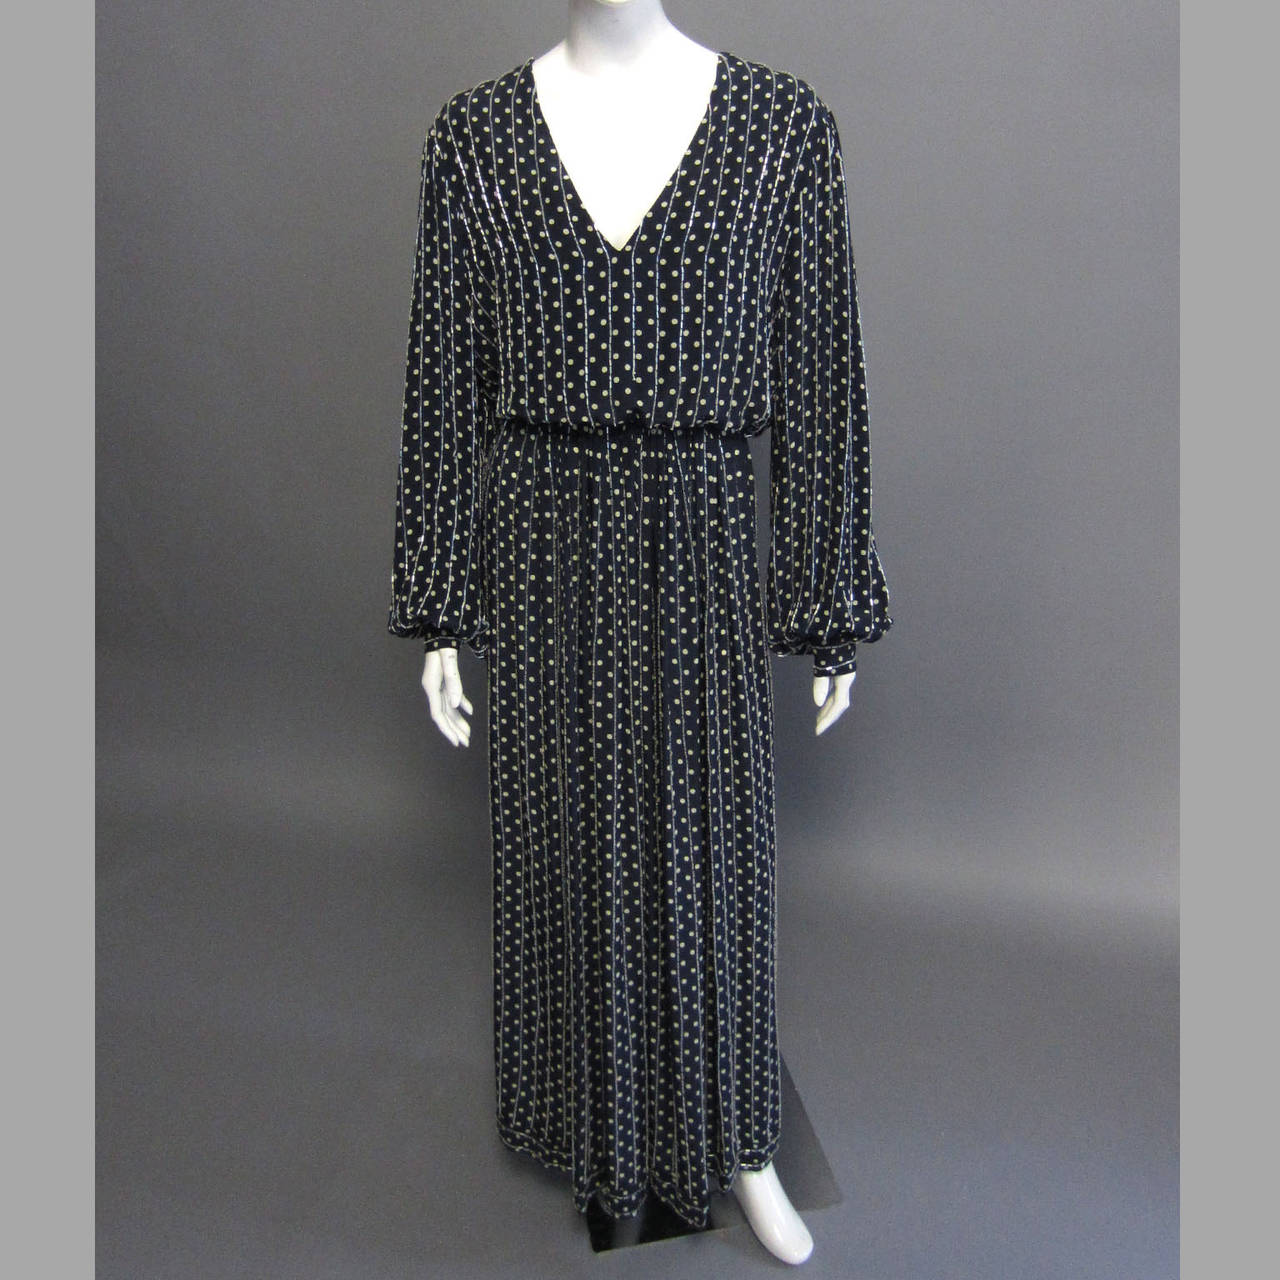 This Bill Blass gown features navy silk that is covered in a small, grey polka dot print. This print is accented by vertical, silver beading. The striped beadwork covers the entire gown. The long sleeves blouson over the 1.75